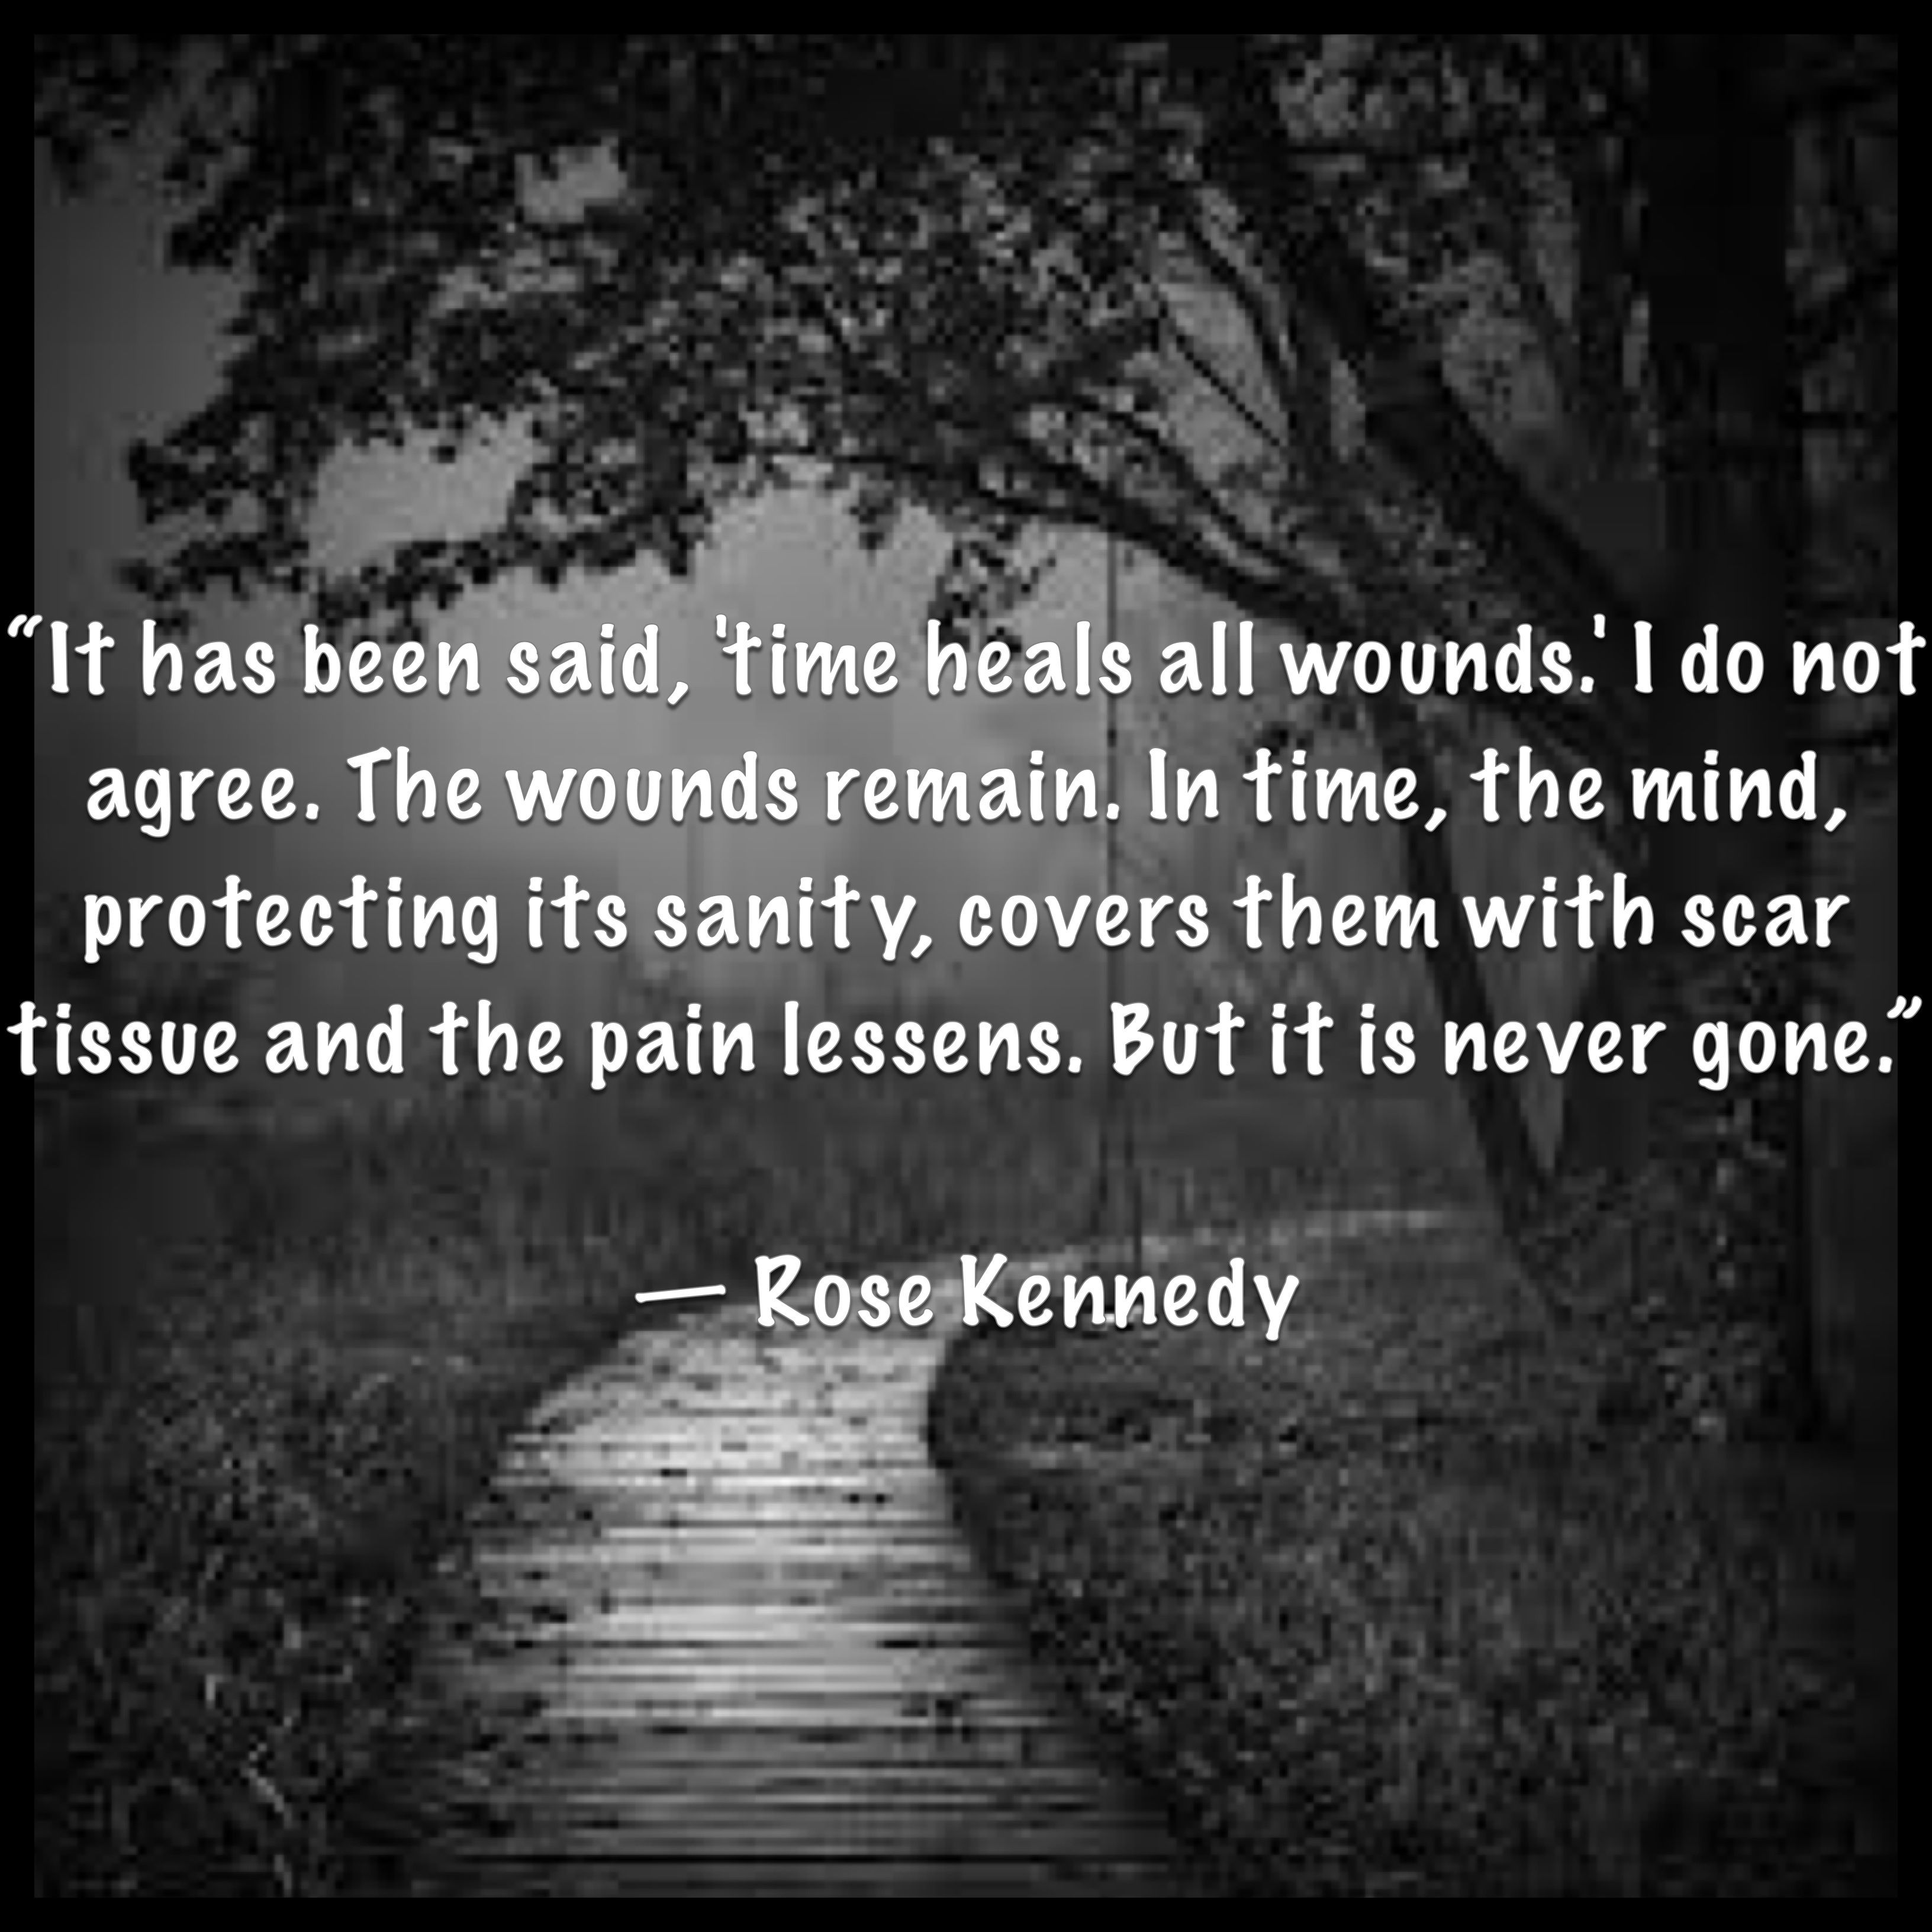 Rose Kennedy Quotes Quote | Inspiring words to live by | Quotes, Sayings, Rose kennedy  Rose Kennedy Quotes